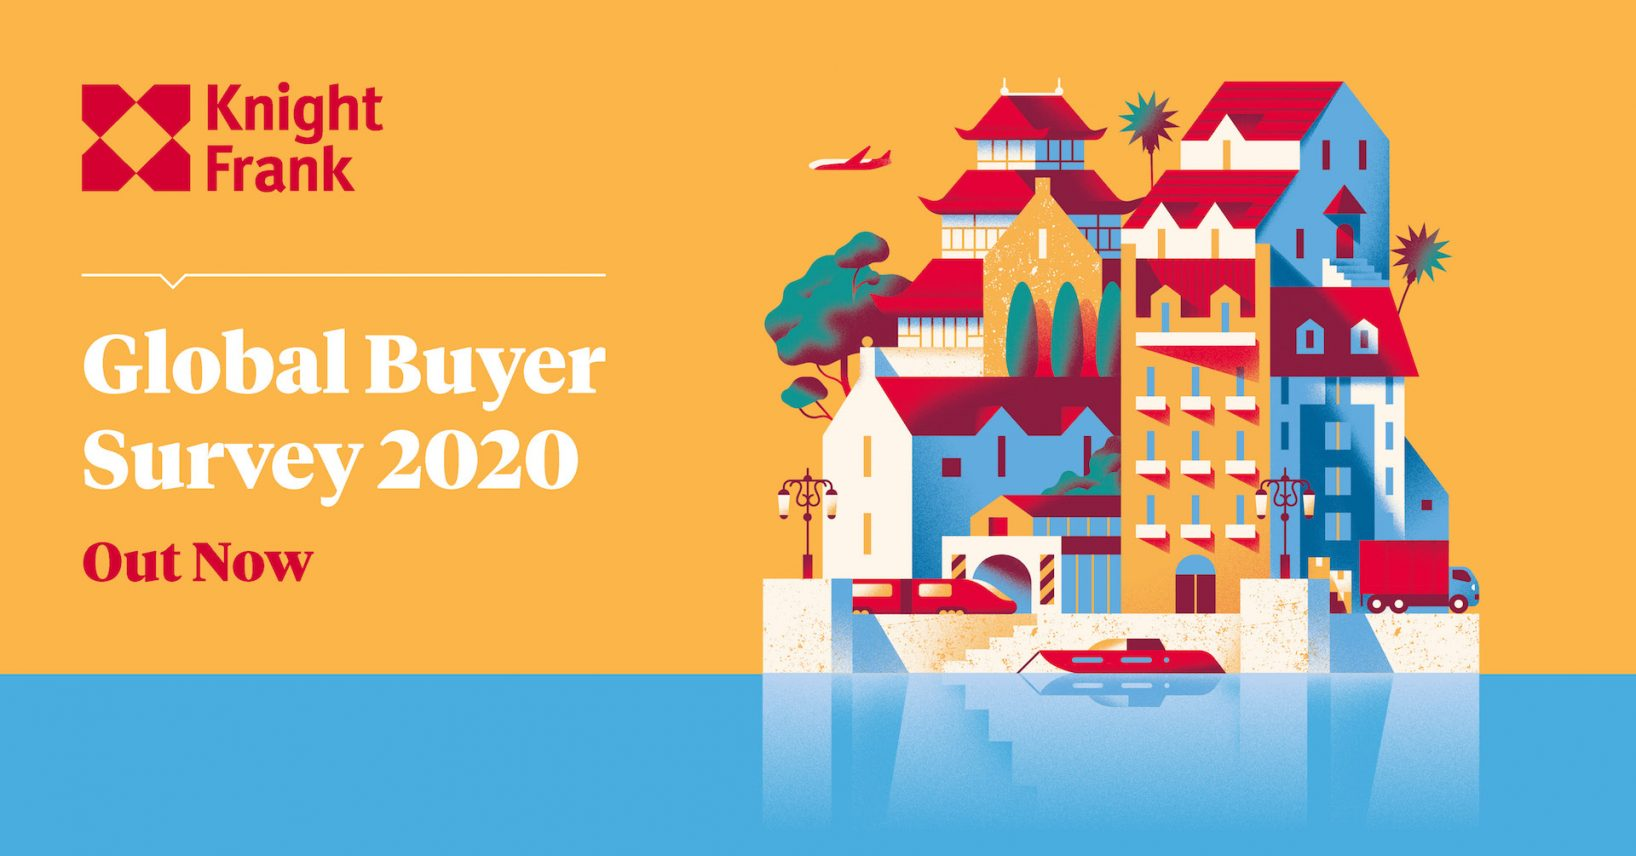 Knight Frank's Global Buyer Survey 2020 released